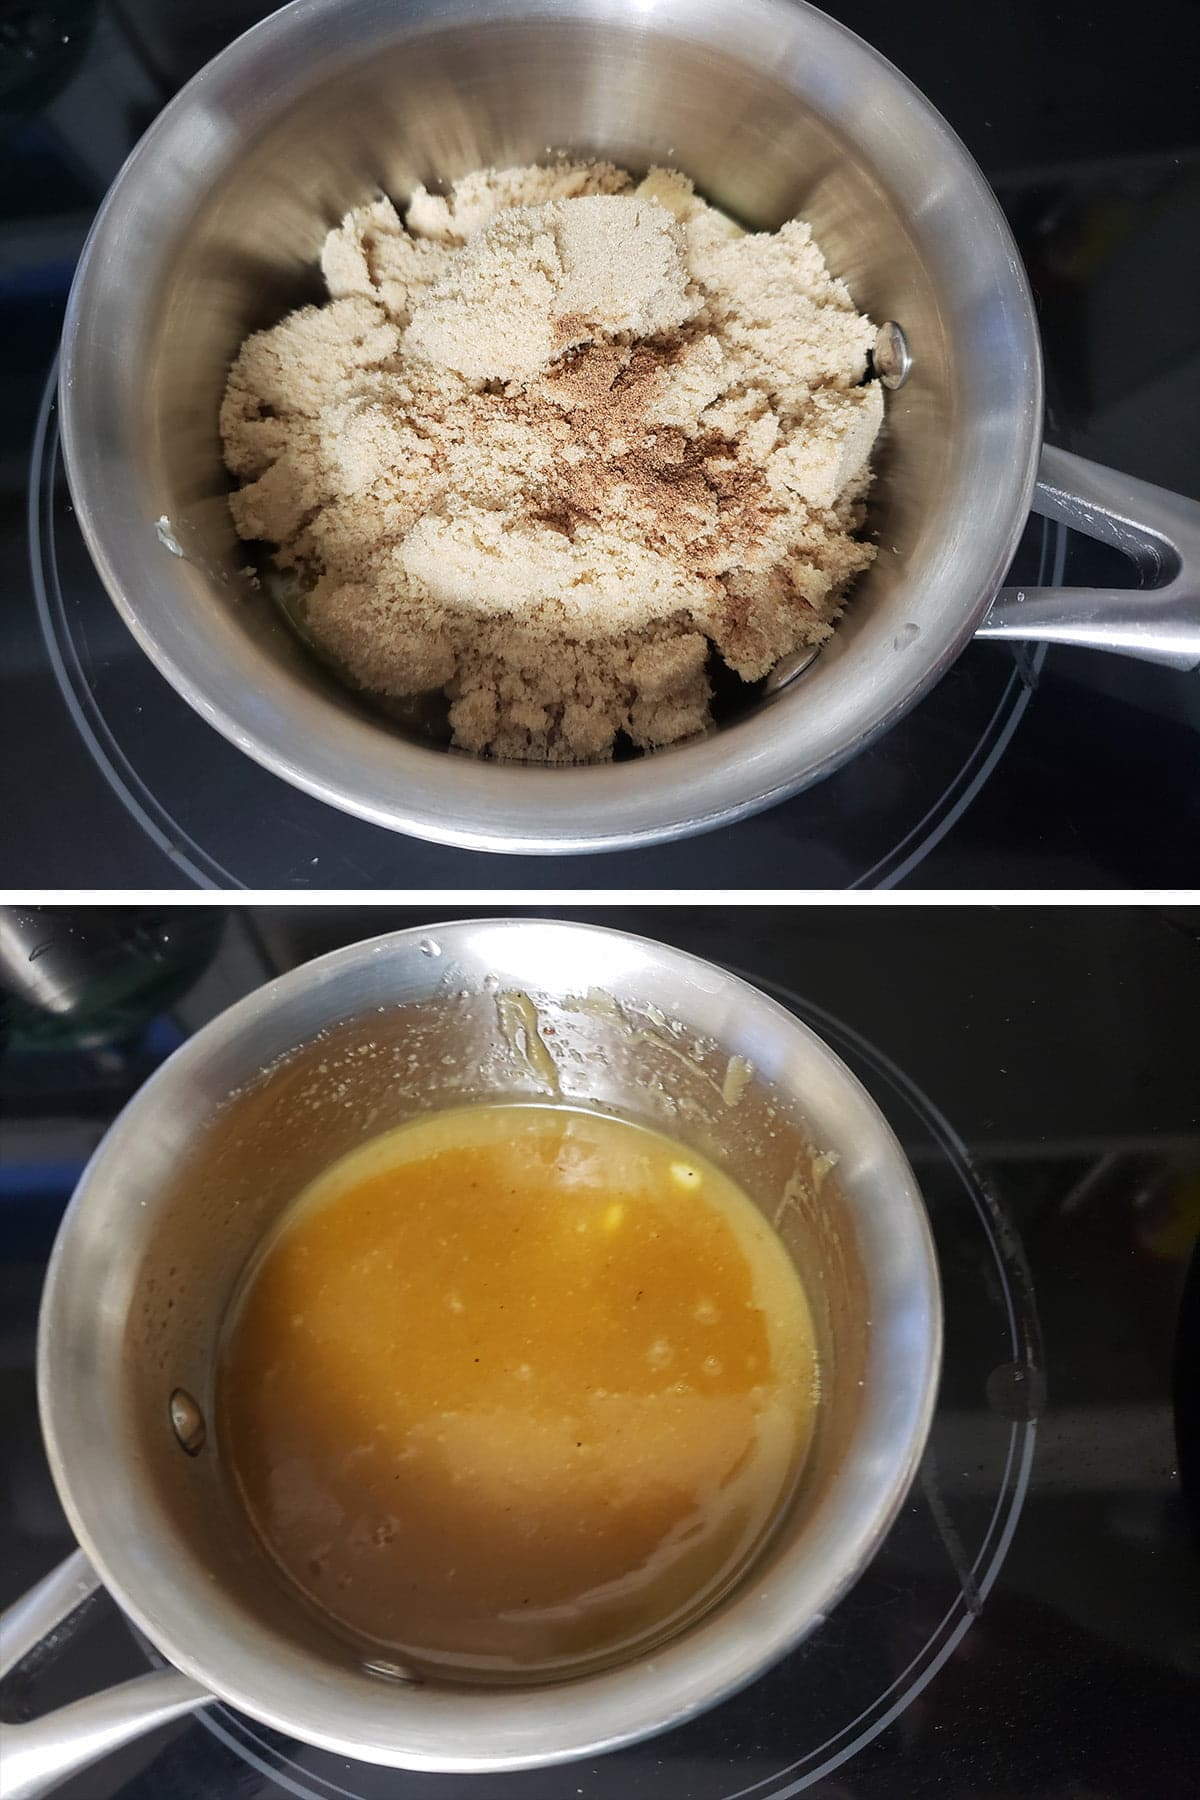 A 2 photo compilation image, showing butter and brown sugar being combined, and the caramel that it turns into.